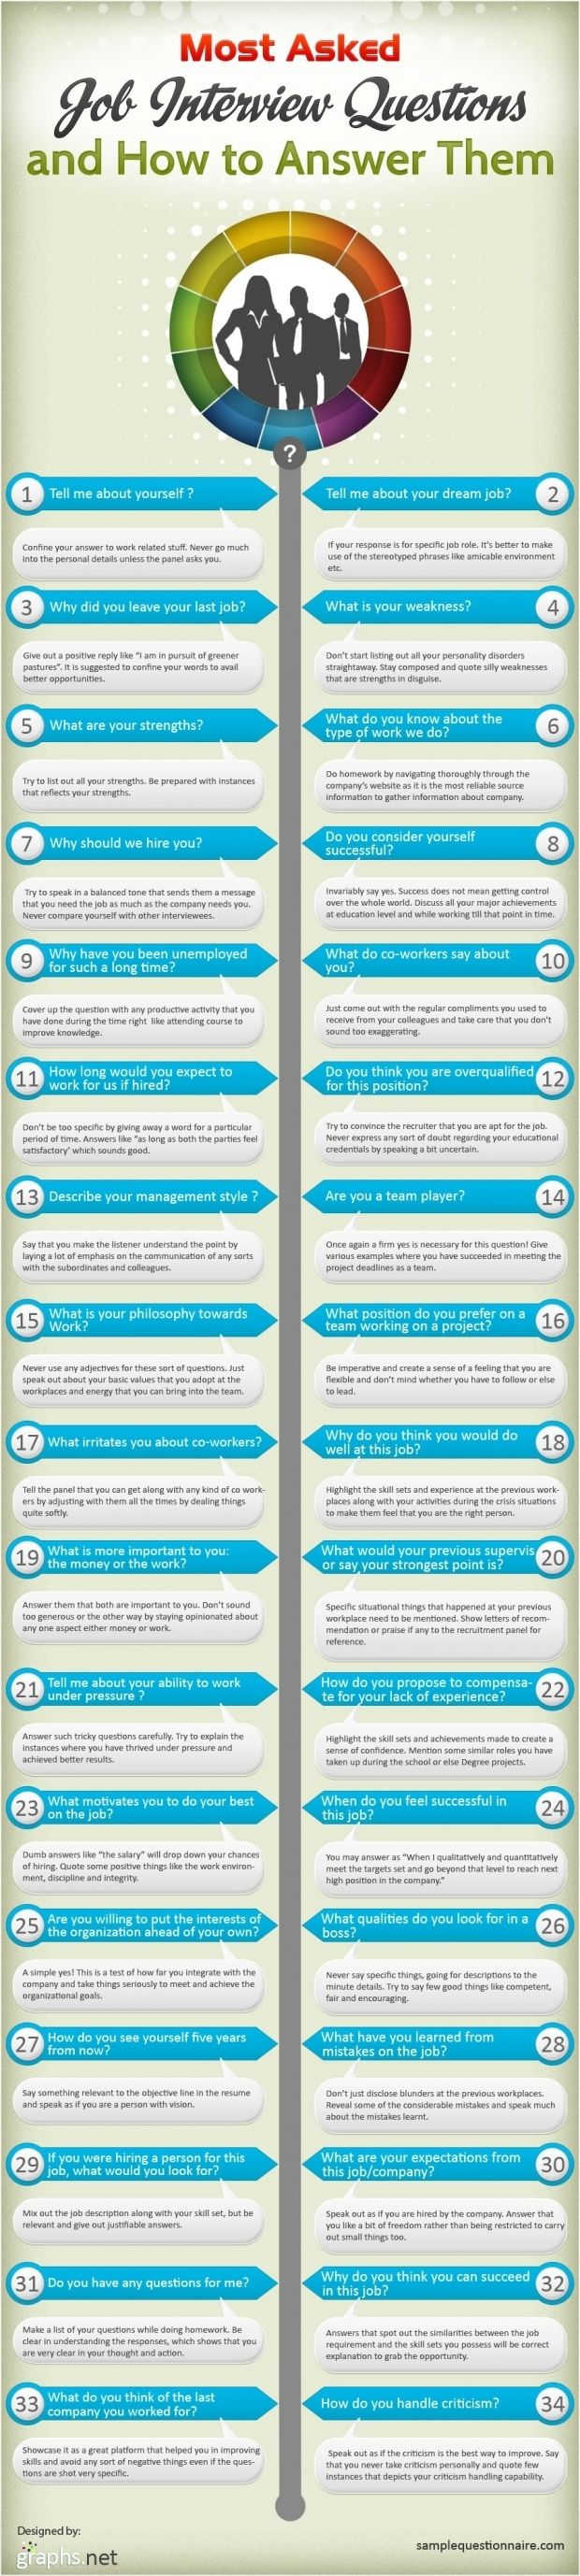 17 best images about career tips resume tips most asked interview questions career preparation i teks student uses employability skills to gain an entry level job in a high skill high wage